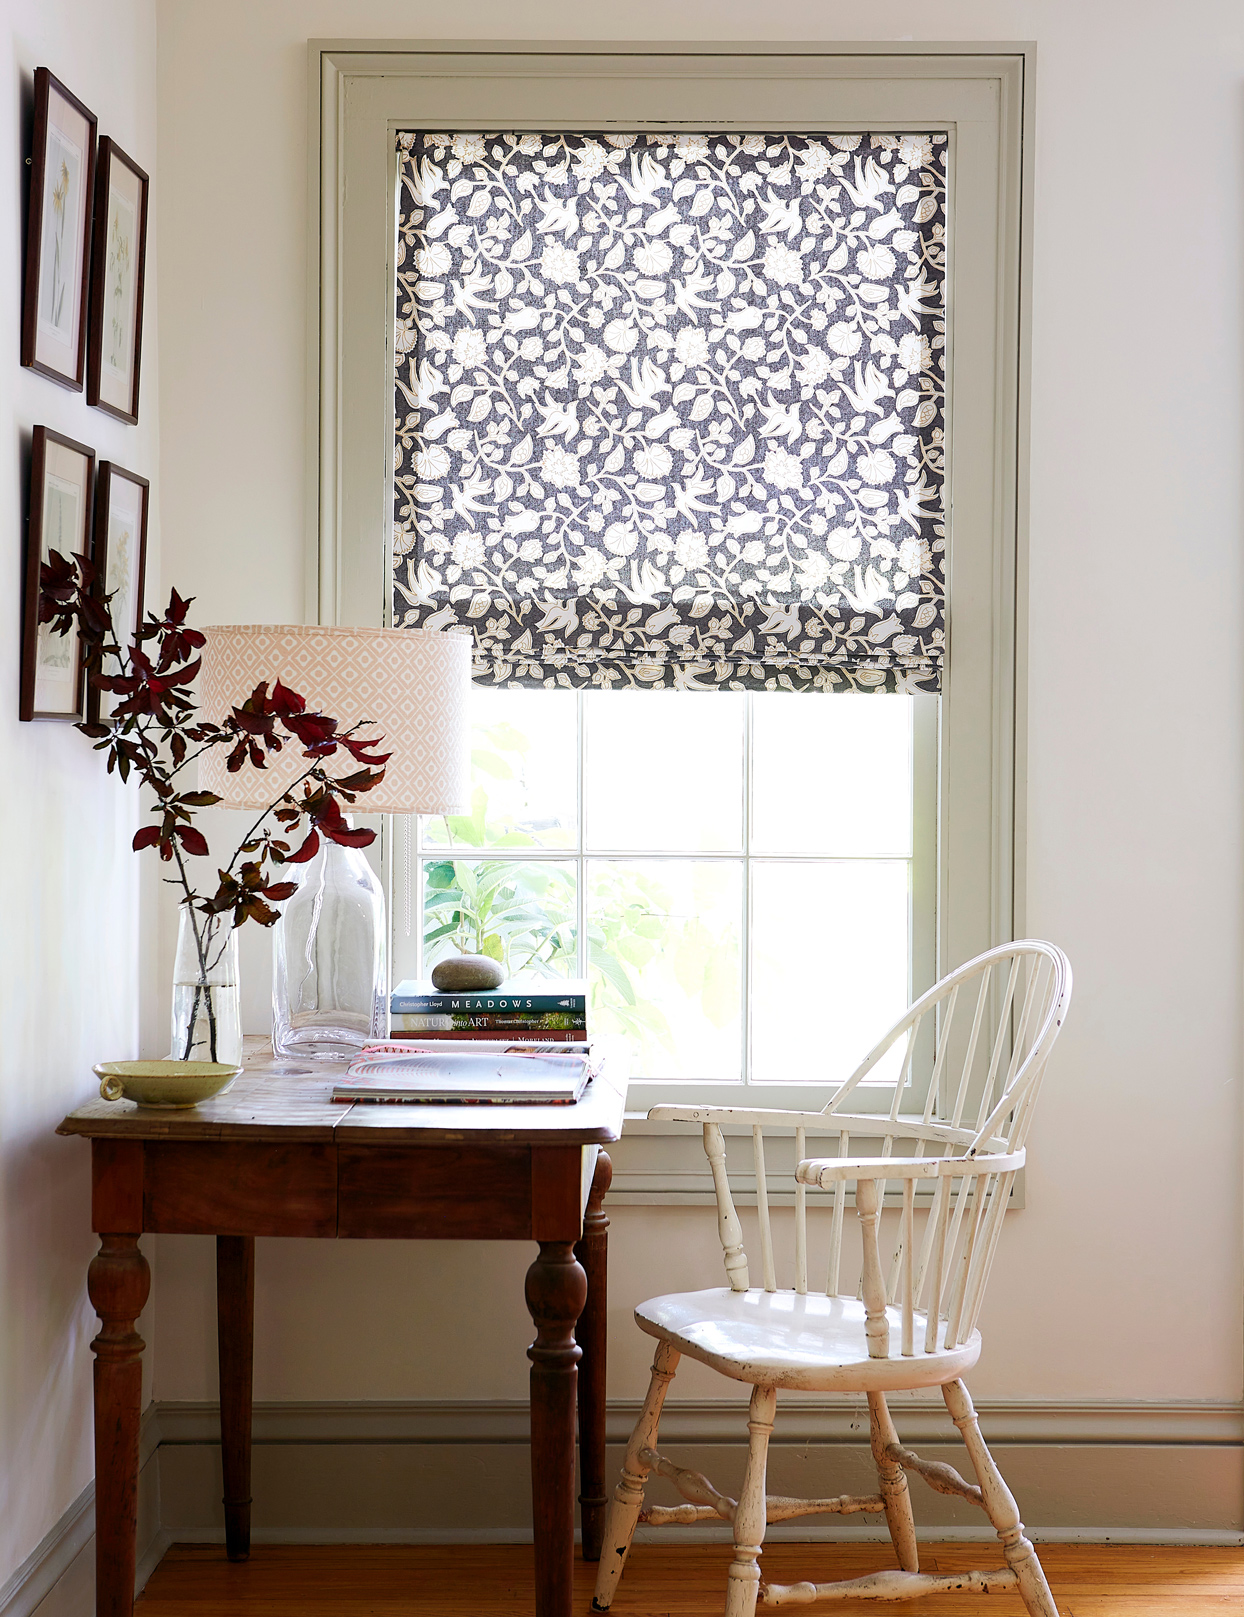 desk near window with floral shades